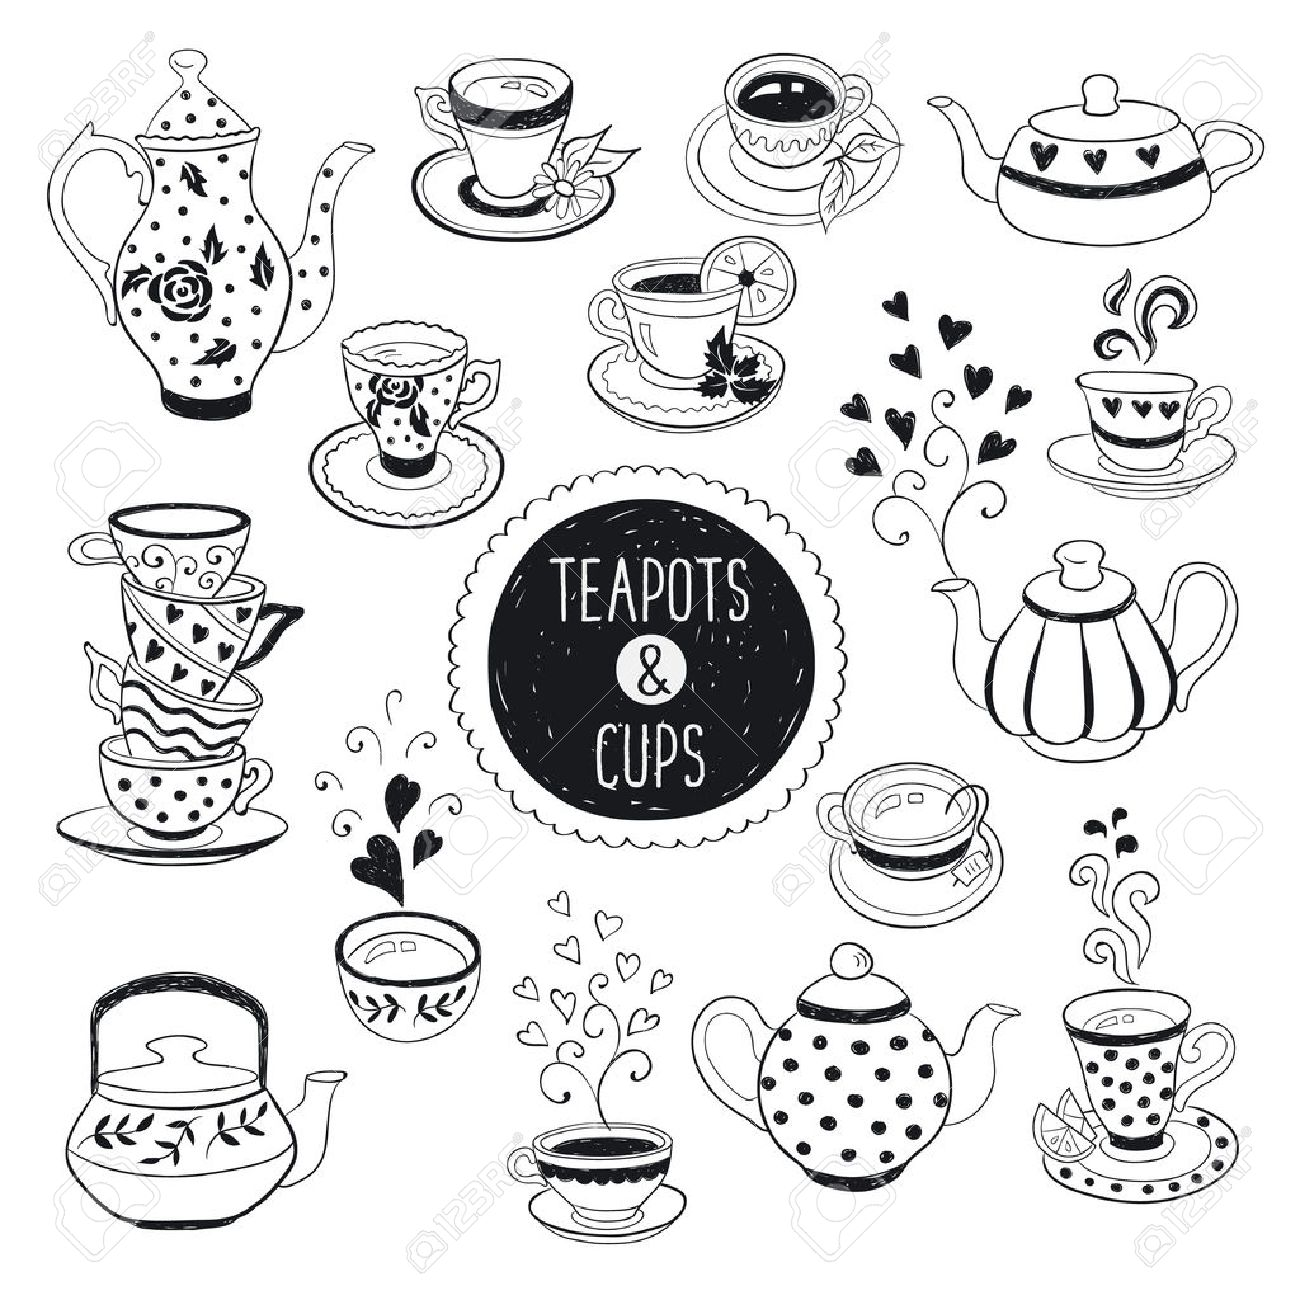 Hand Drawn Teapot And Cup Collection Doodle Tea Cups Coffee Royalty Free Cliparts Vectors And Stock Illustration Image 47489544